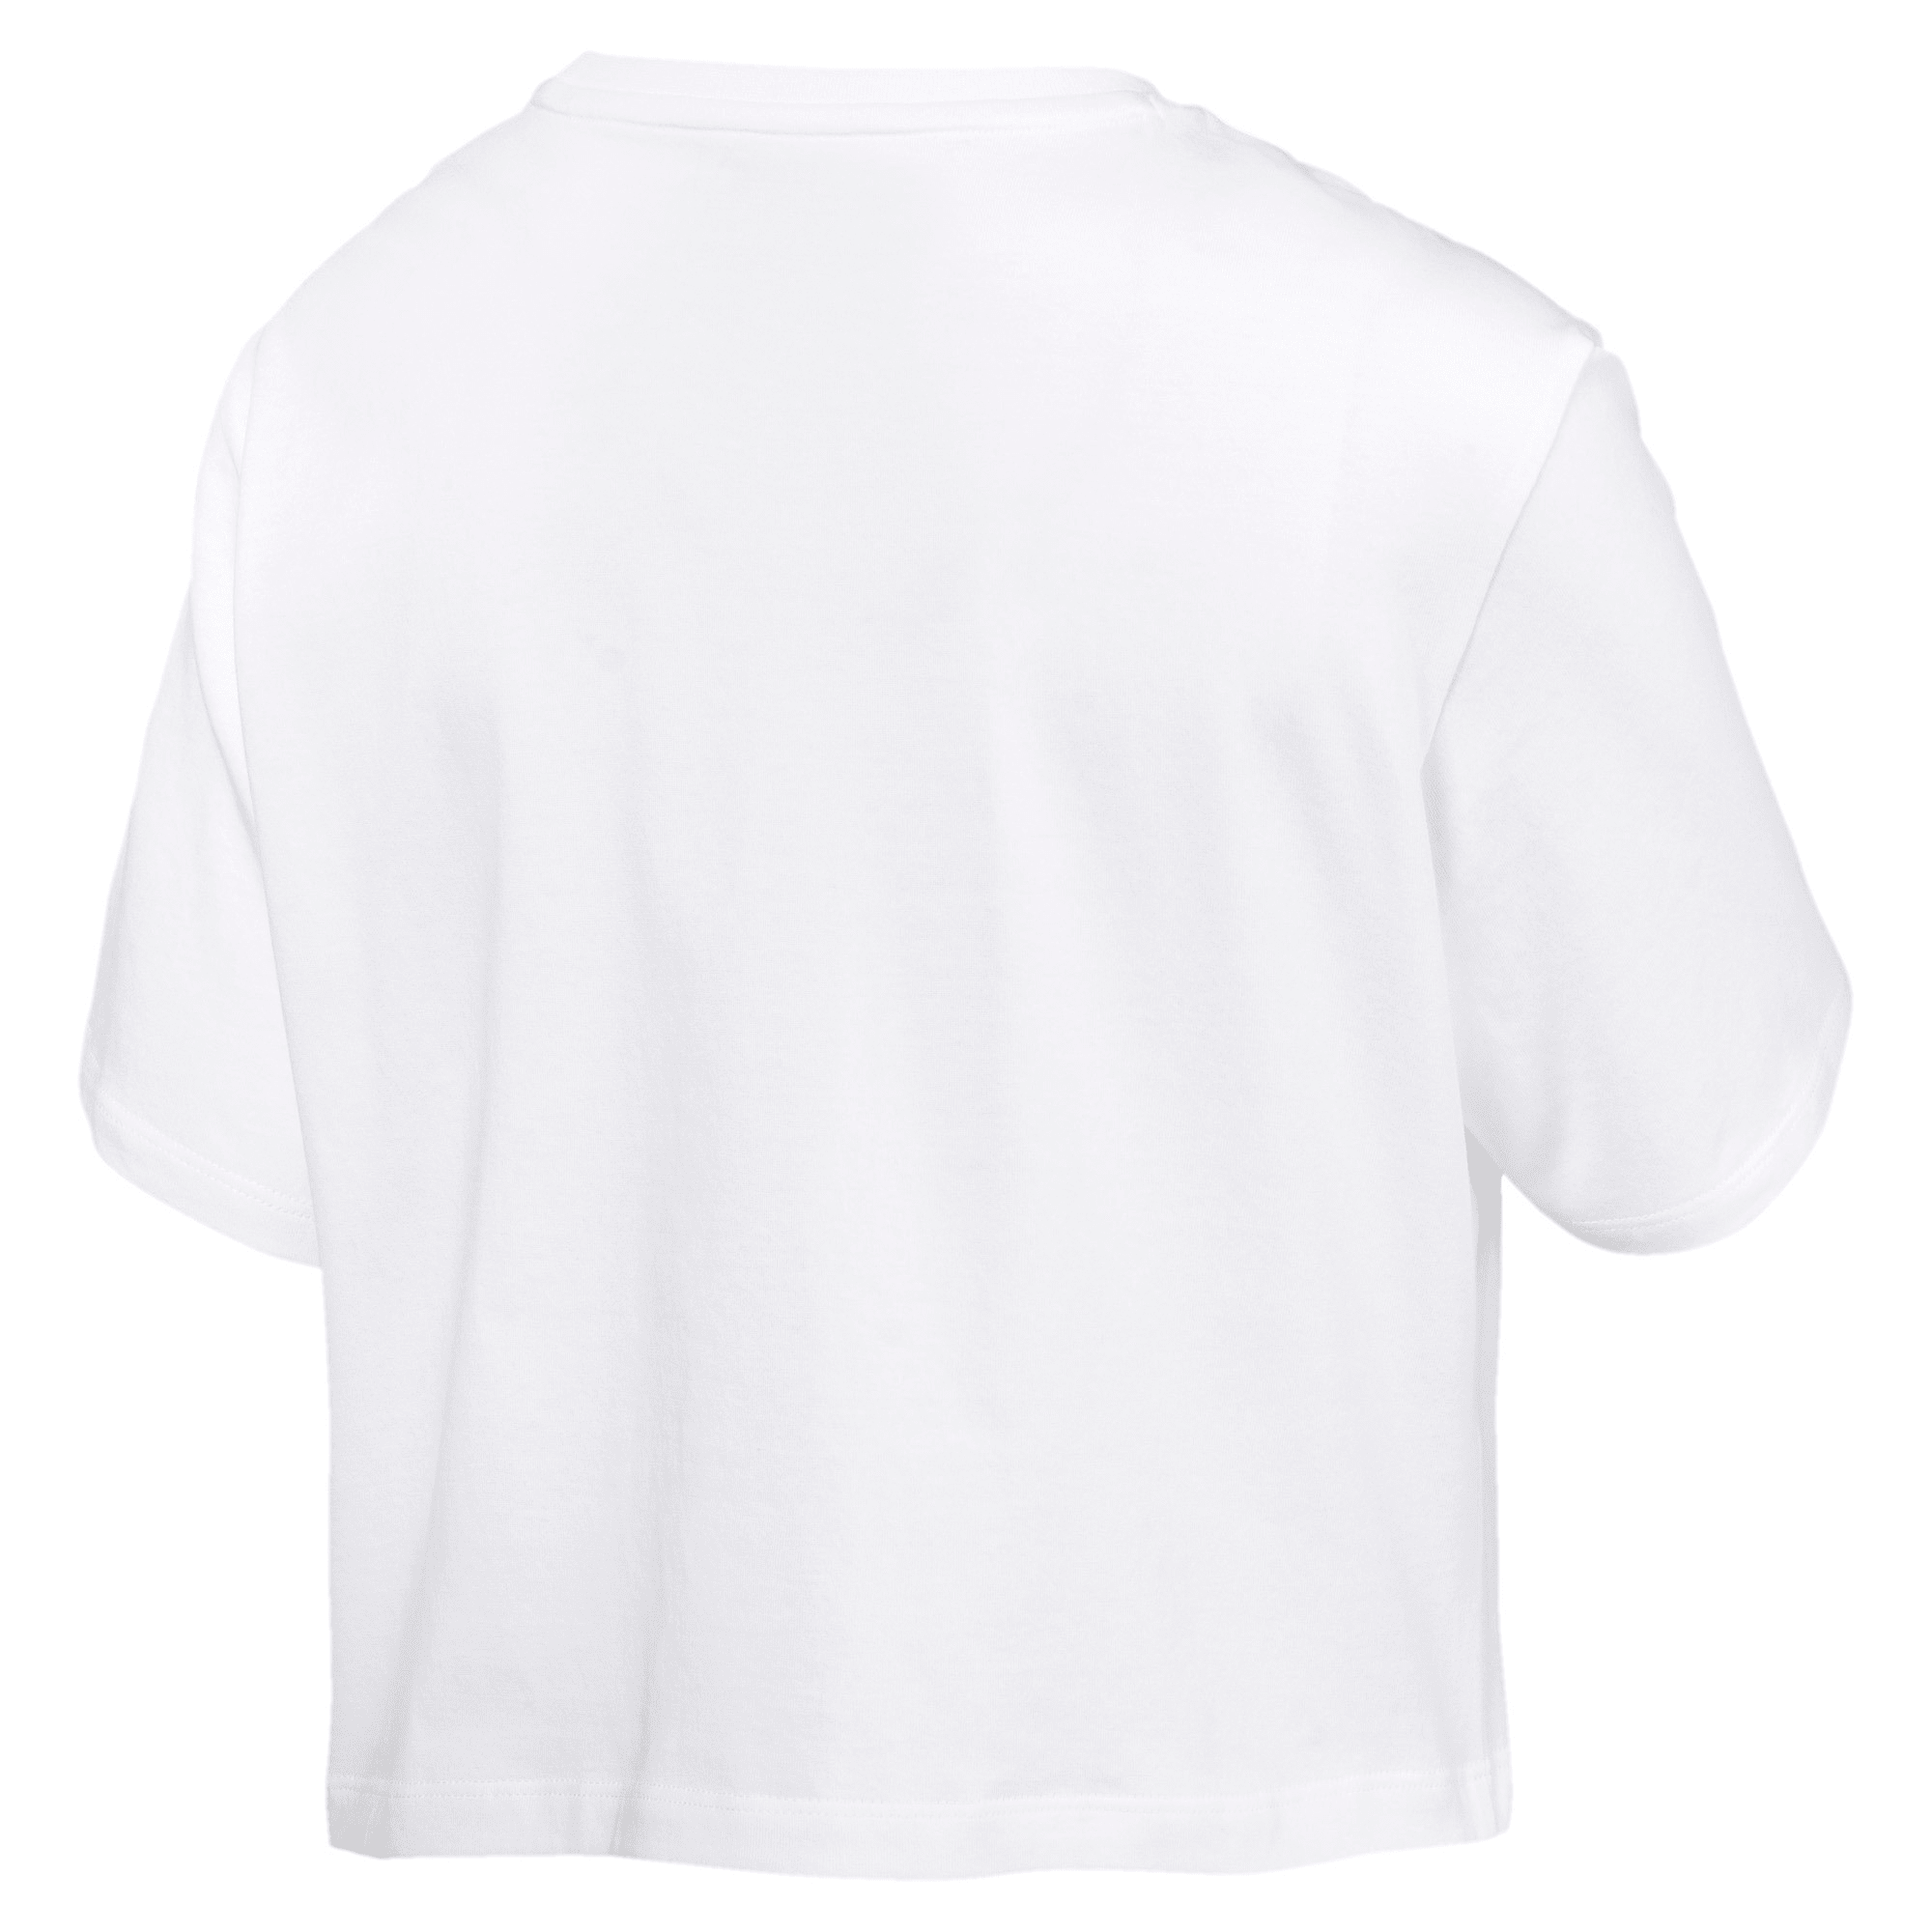 Thumbnail 5 of Damen Cropped Logo T-Shirt, Puma White, medium